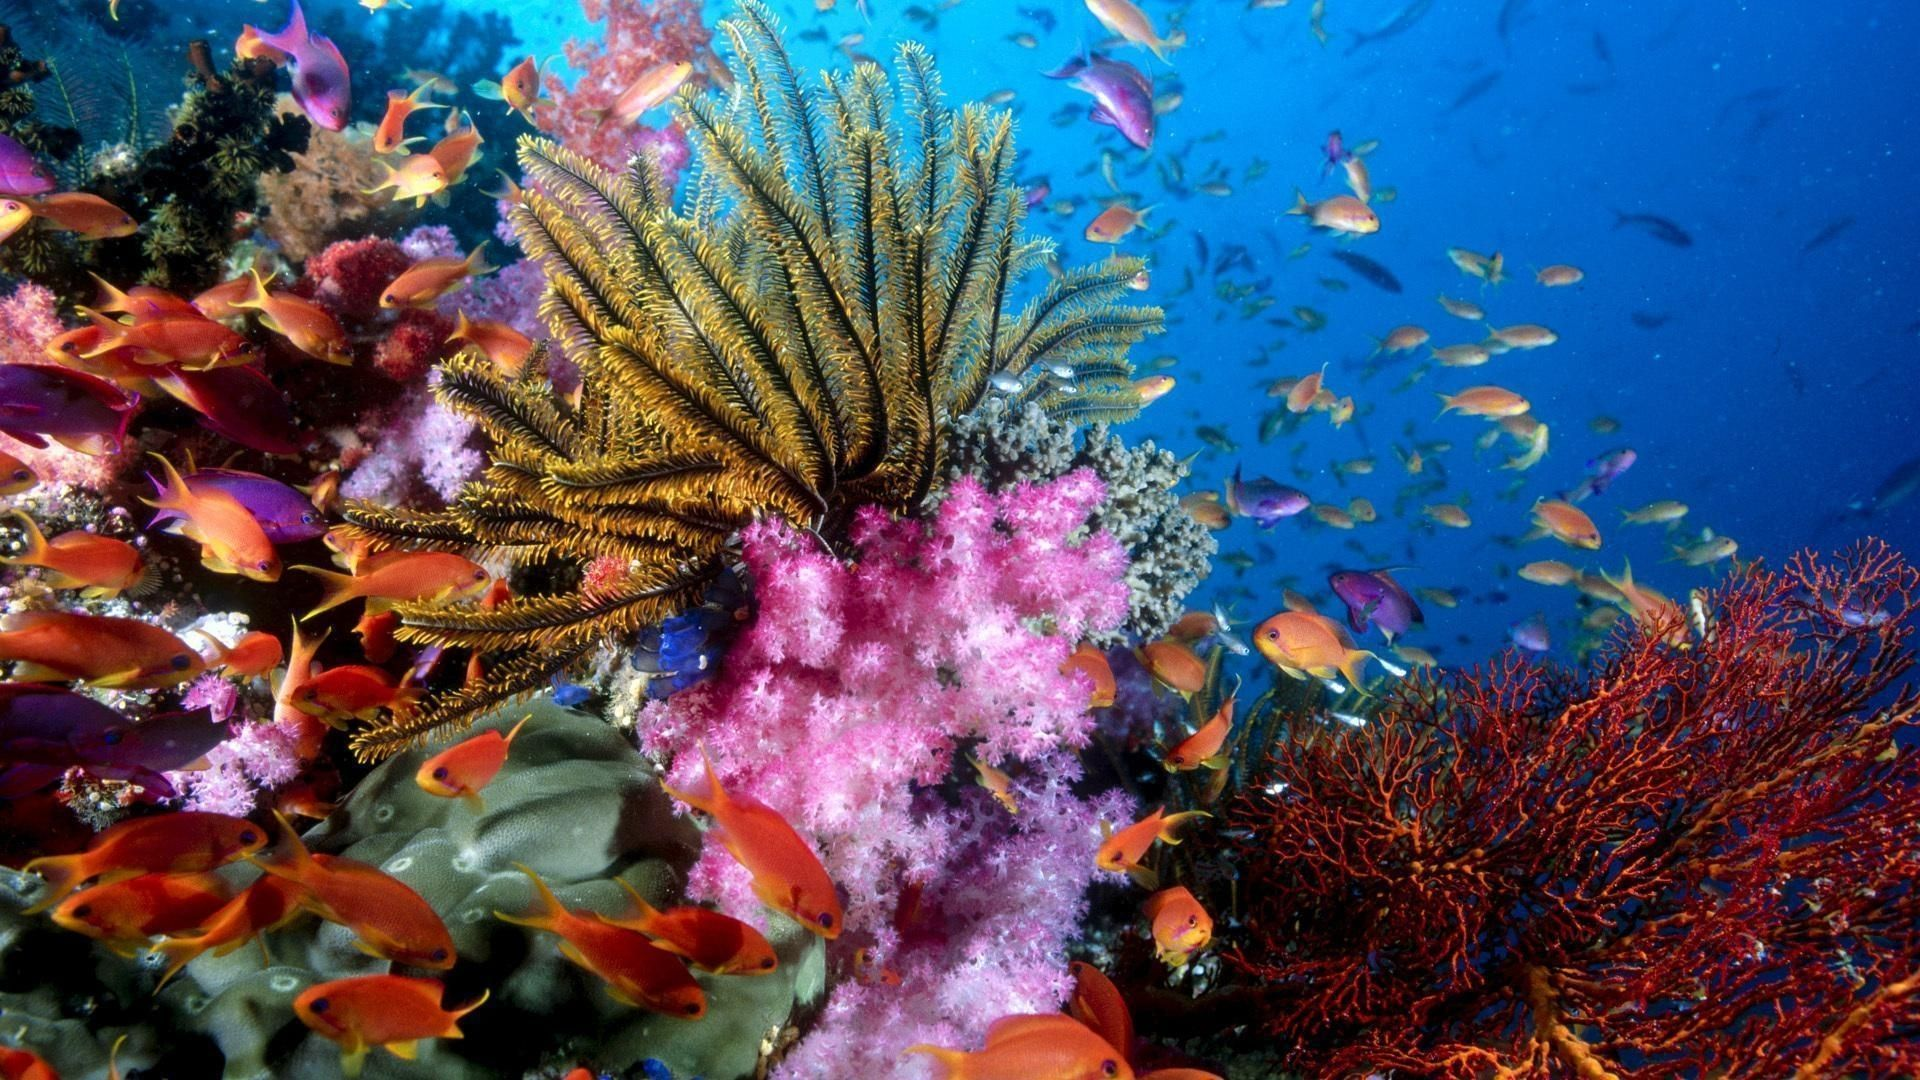 10 New Colorful Coral Reefs Wallpaper Hd Full Hd 1080p For Pc Desktop Coral Reef Photography Sea Life Wallpaper Coral Wallpaper